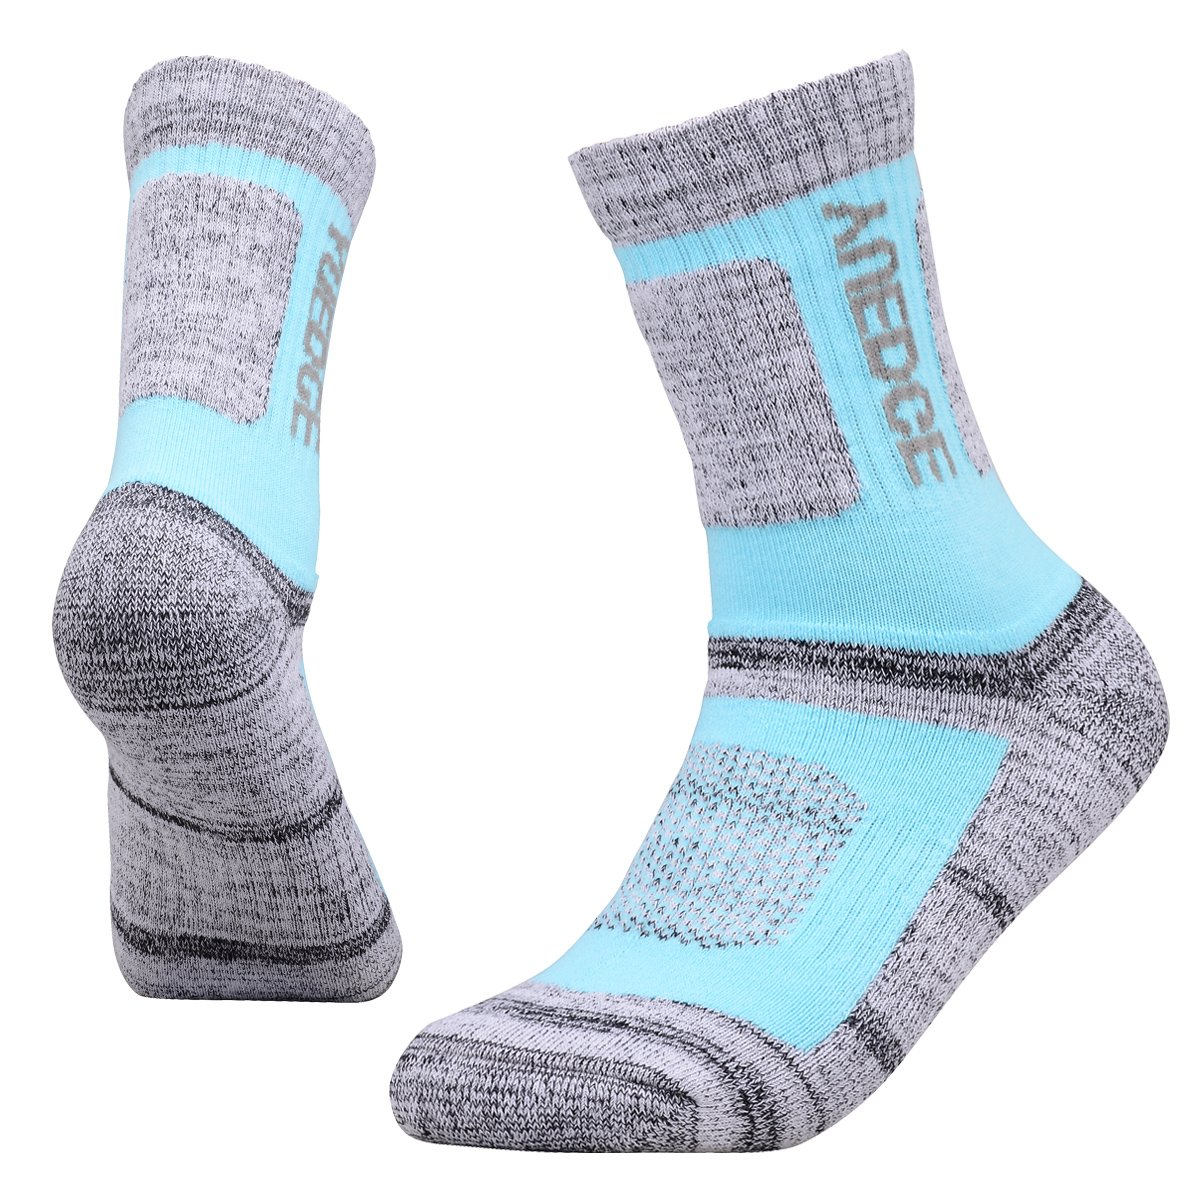 YUEDGE 3 Pairs Women's Women's Wicking Cushion Crew Socks Performance Workout Athletic Sports Socks (L) by YUEDGE (Image #5)